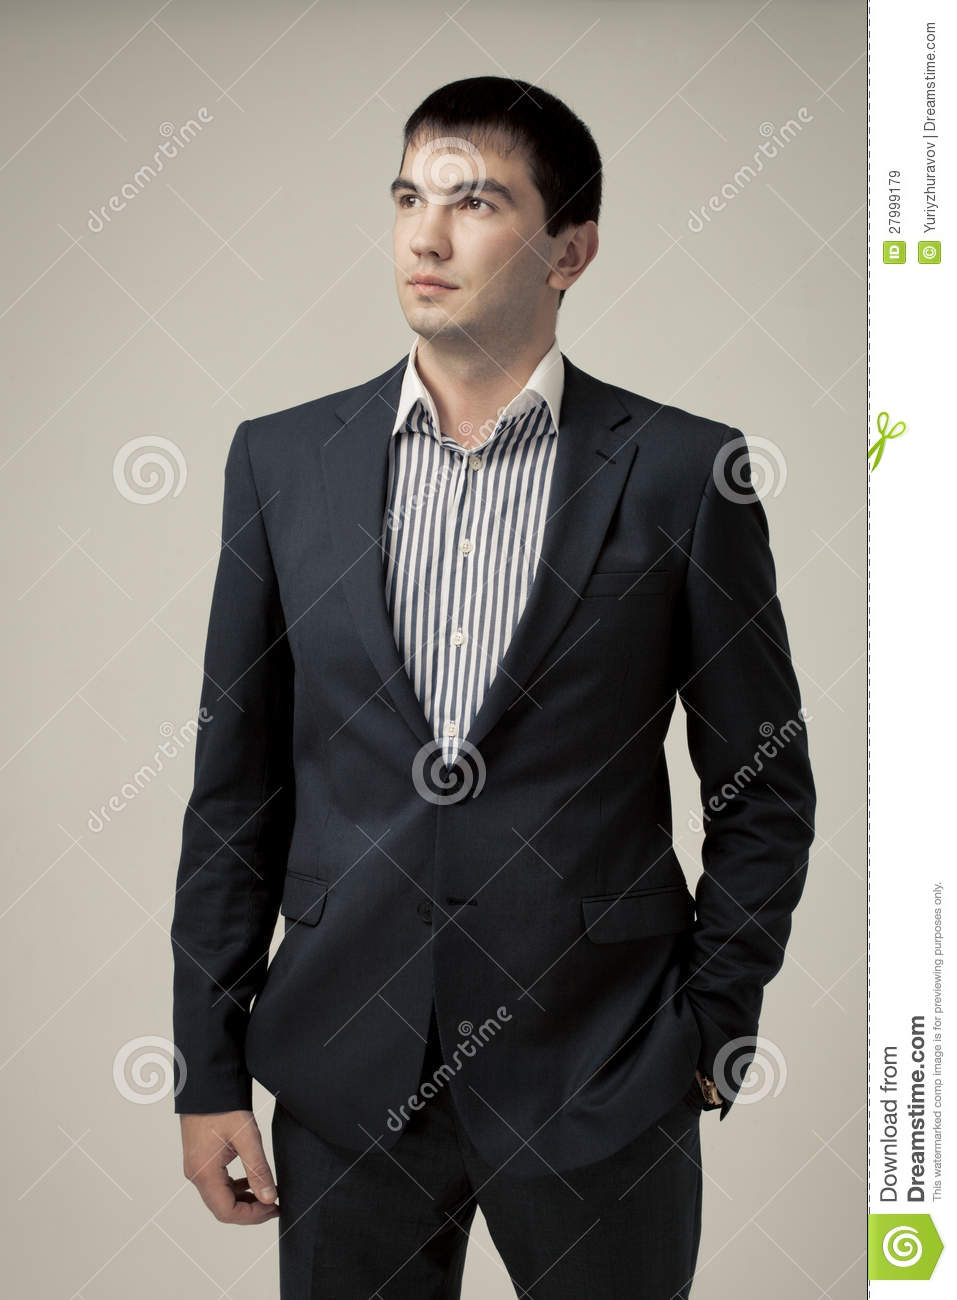 Free Stock Photo Illustration Of A Handsome Man In A ...